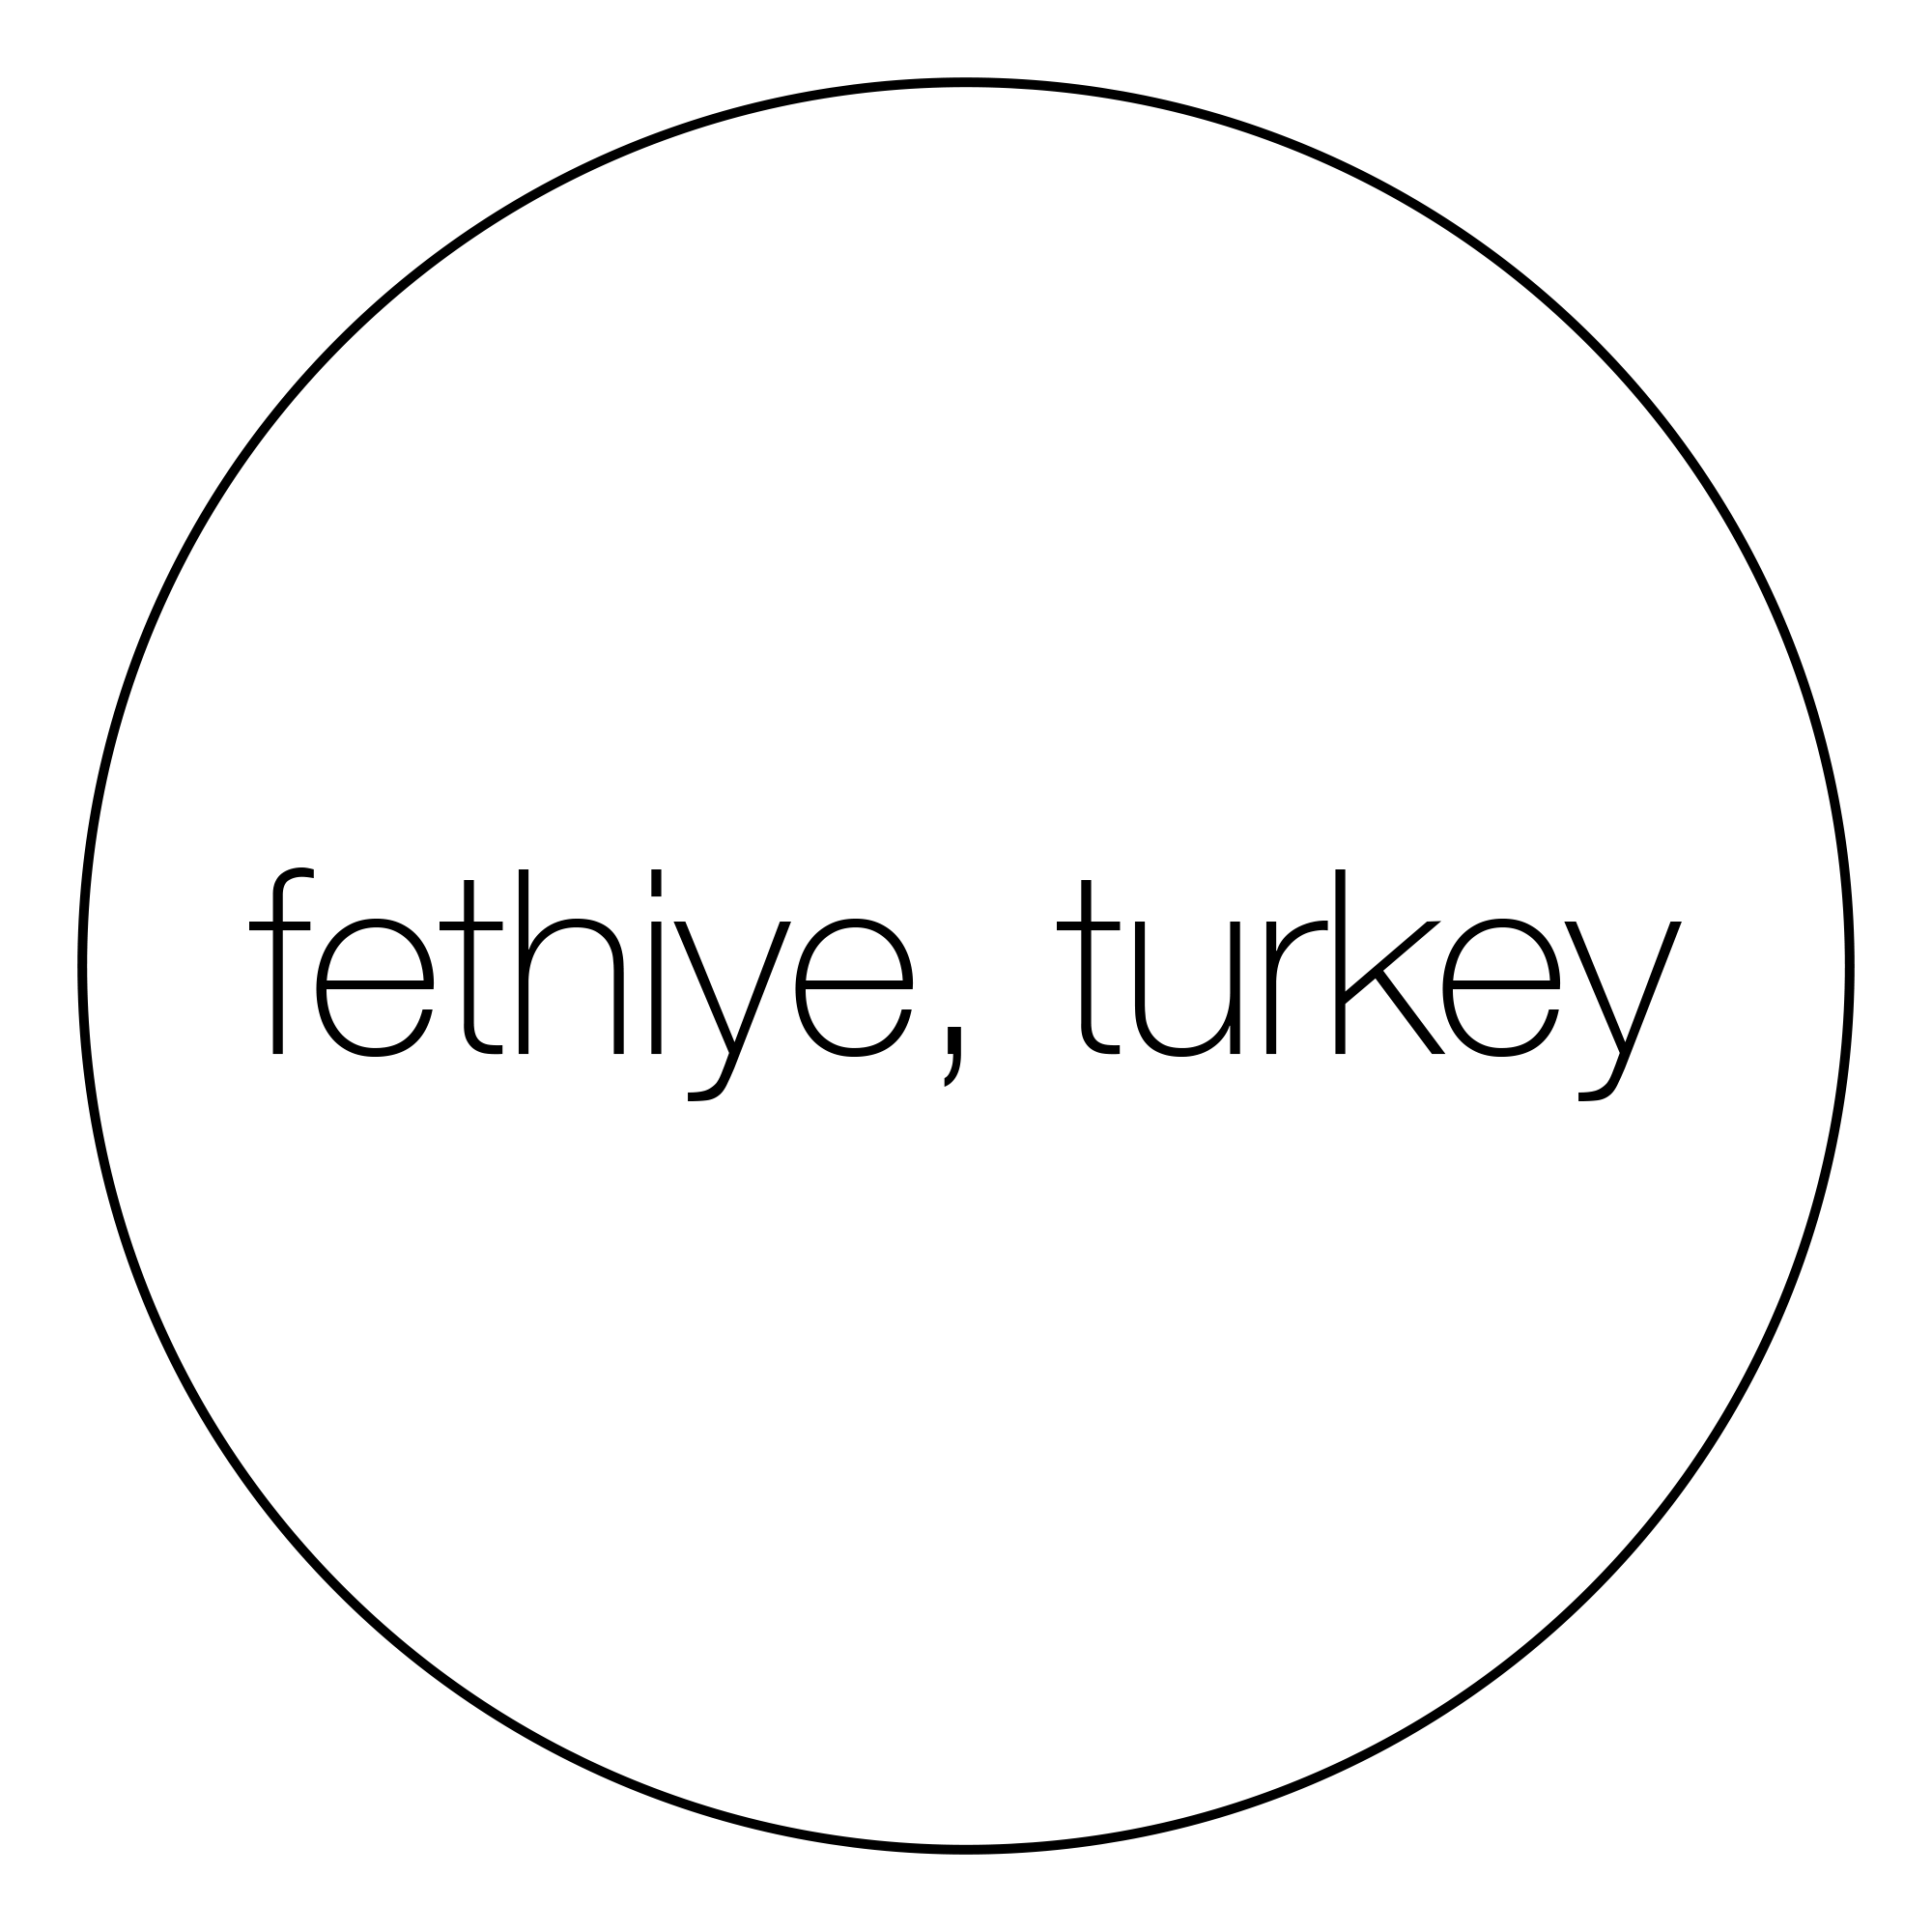 attribute-origin-fethiye-turkey